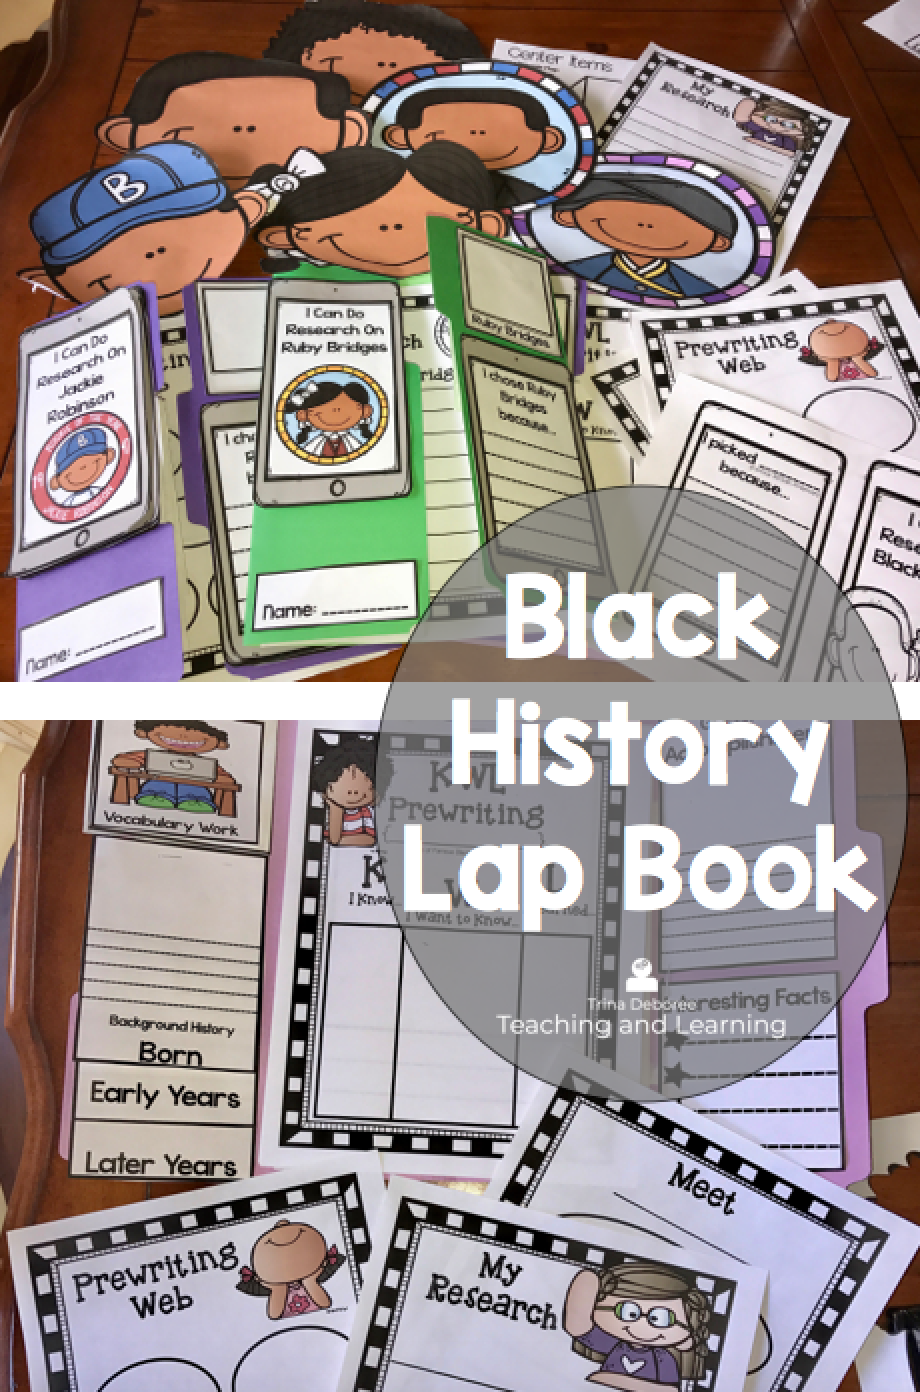 I Can Do Research On Black History Lap Book Bundle | Third Grade ...